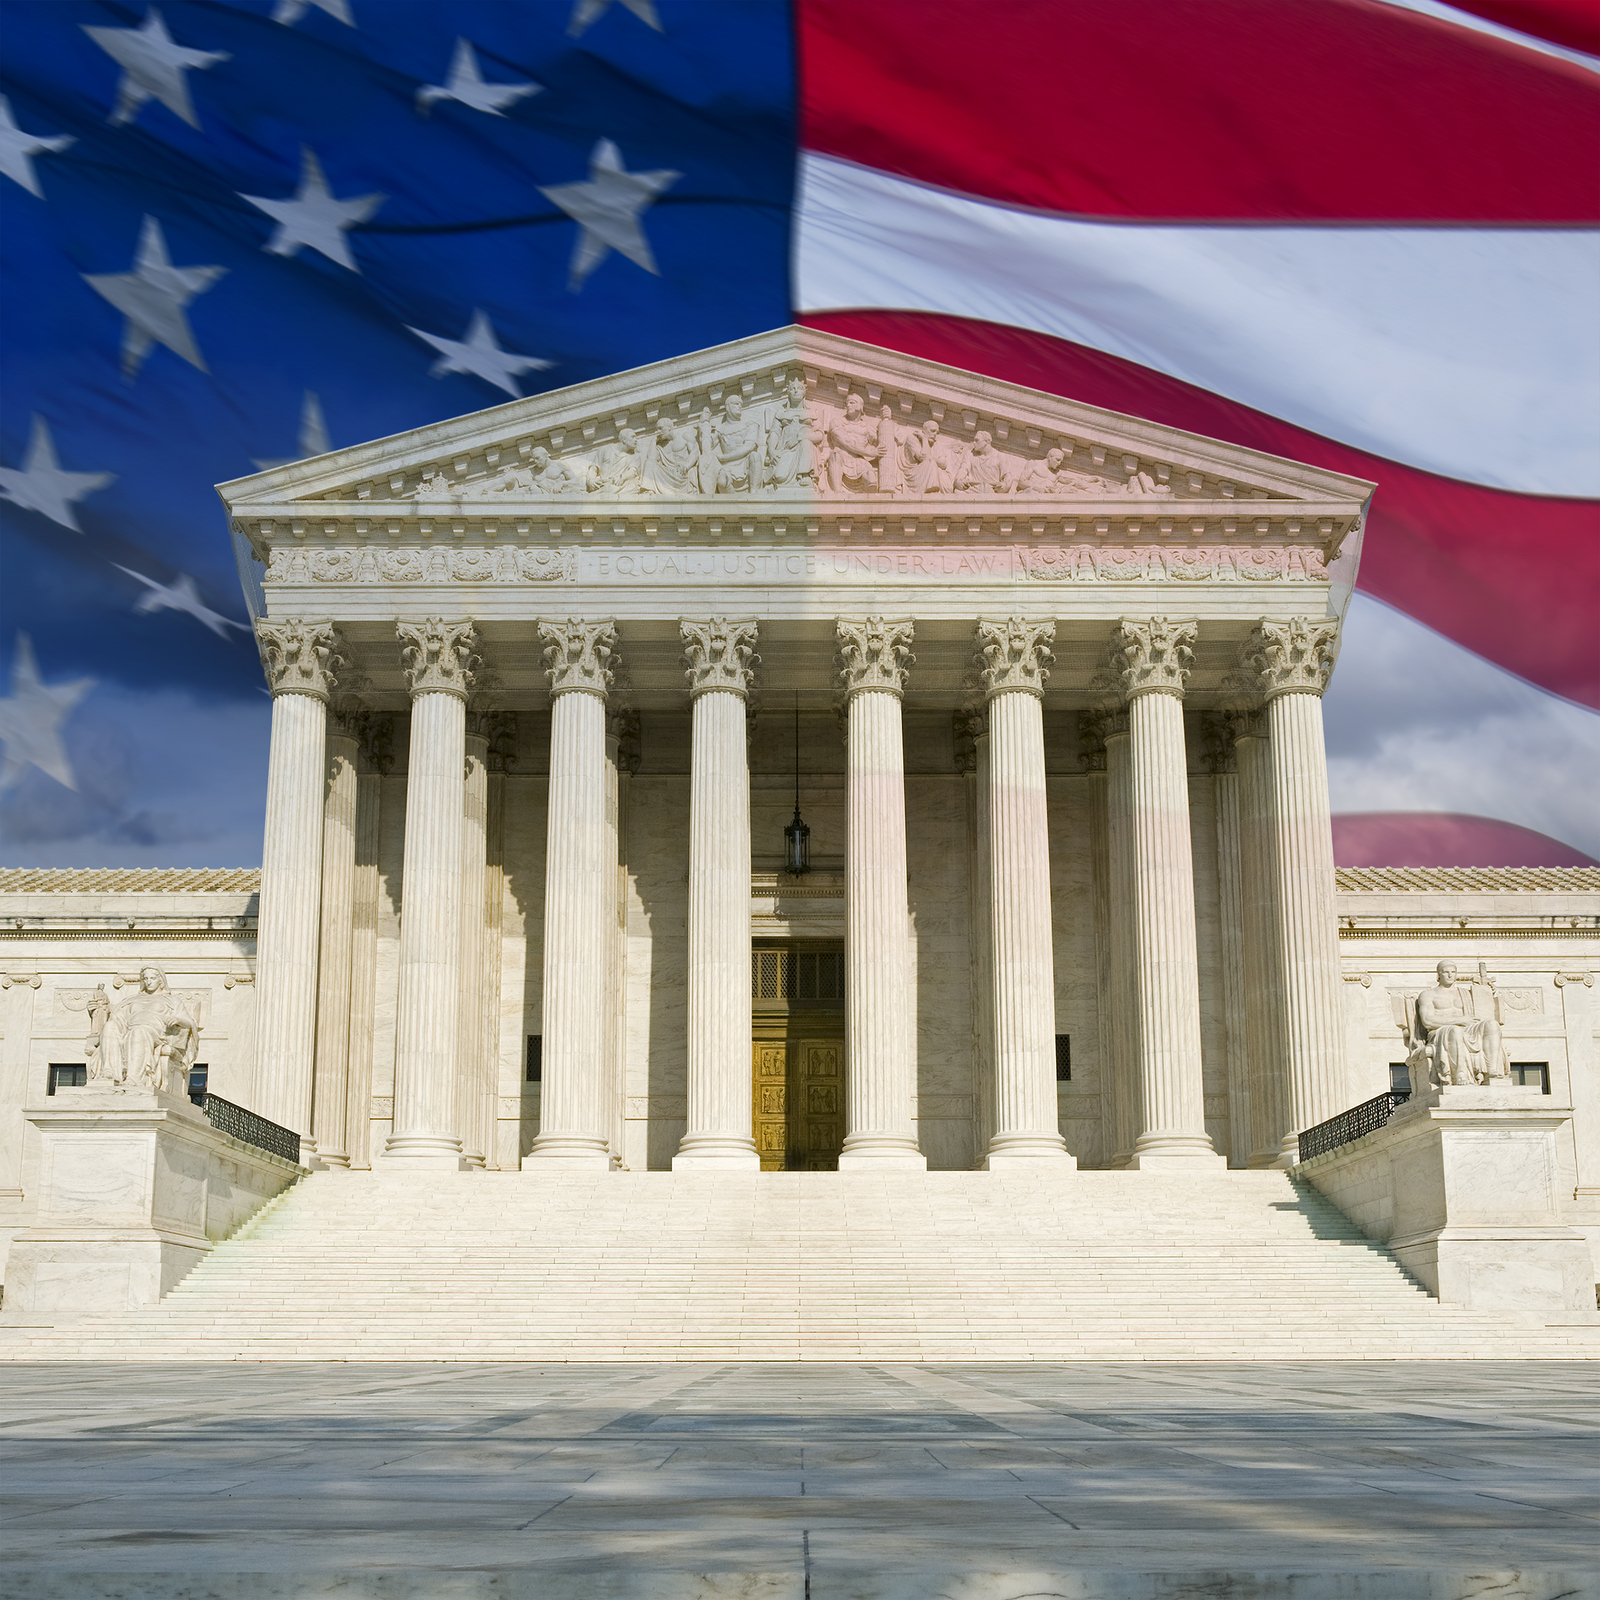 United States Supreme Court Building with American Flag